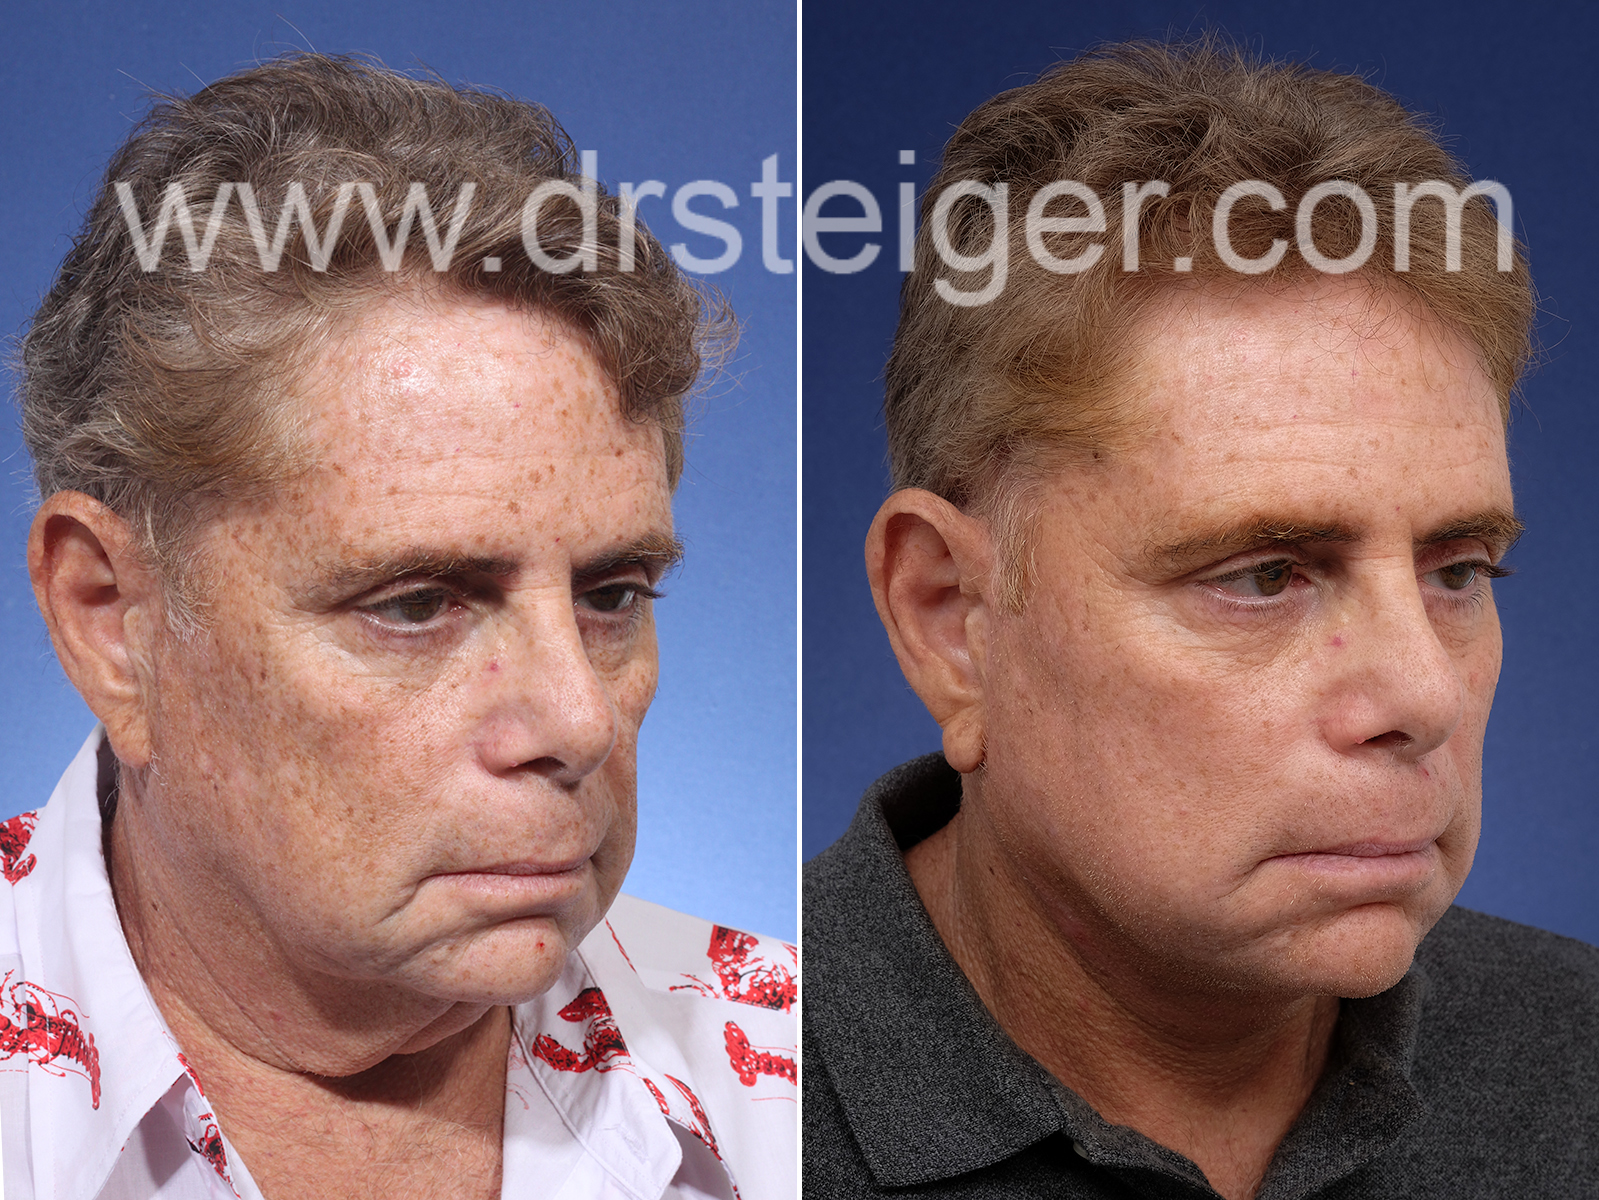 Facelift Man South Florida